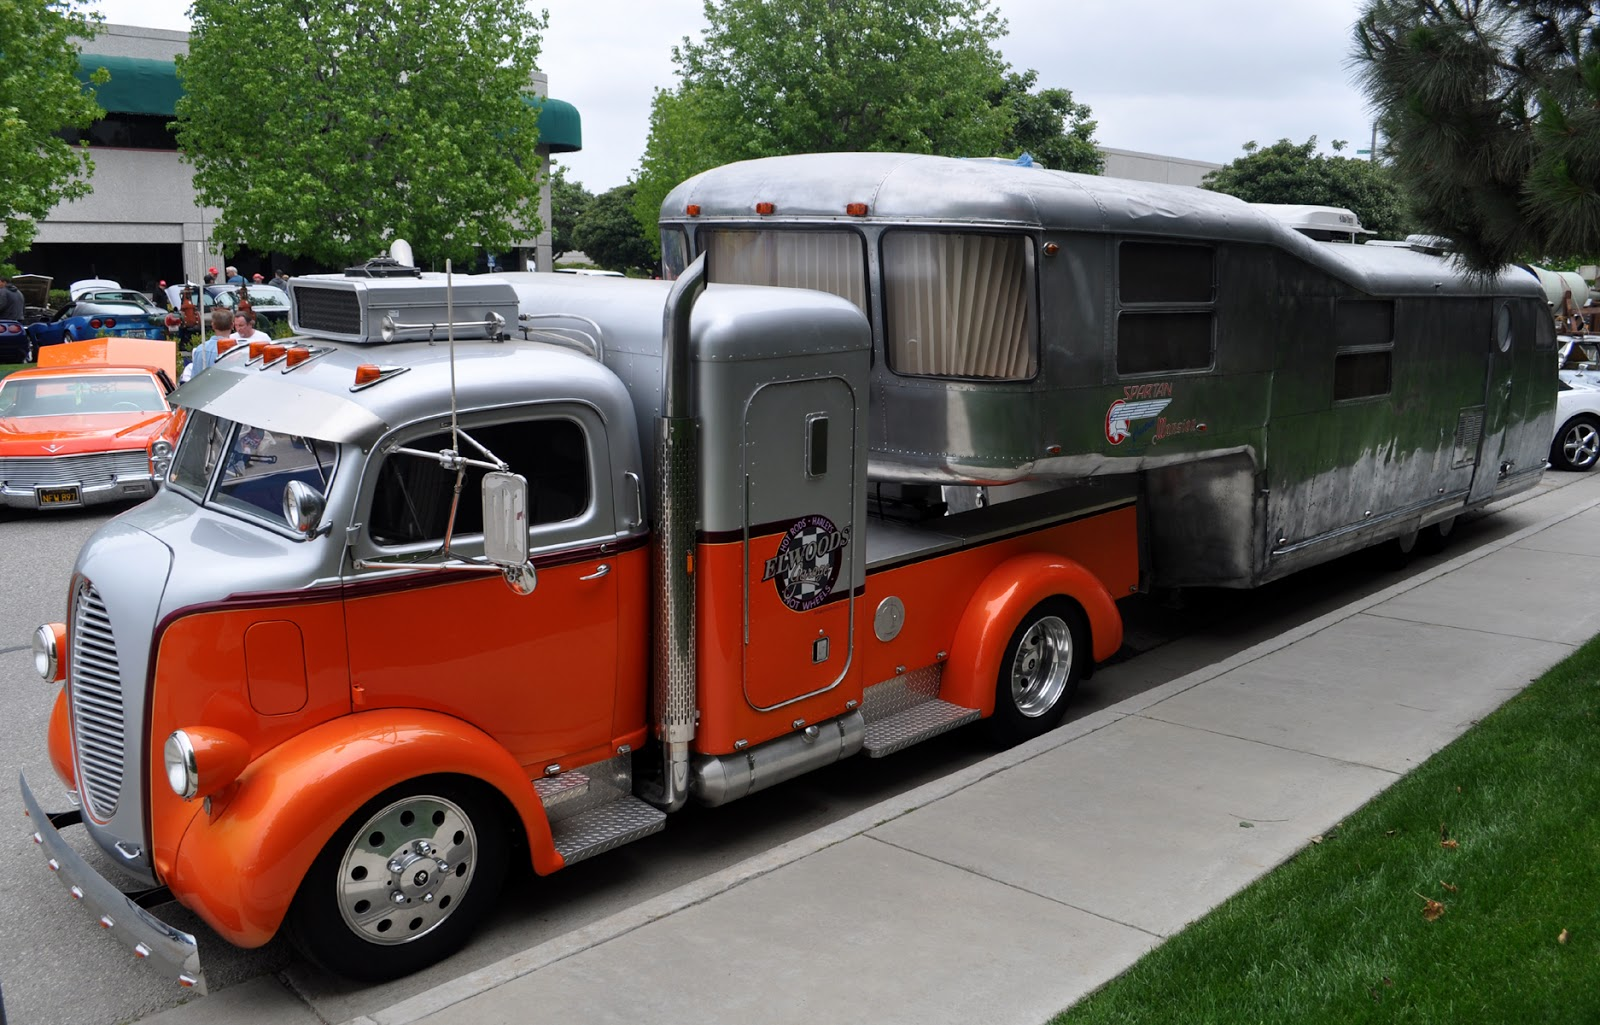 Most impressive hot rod truck and trailer I've seen in a while, the